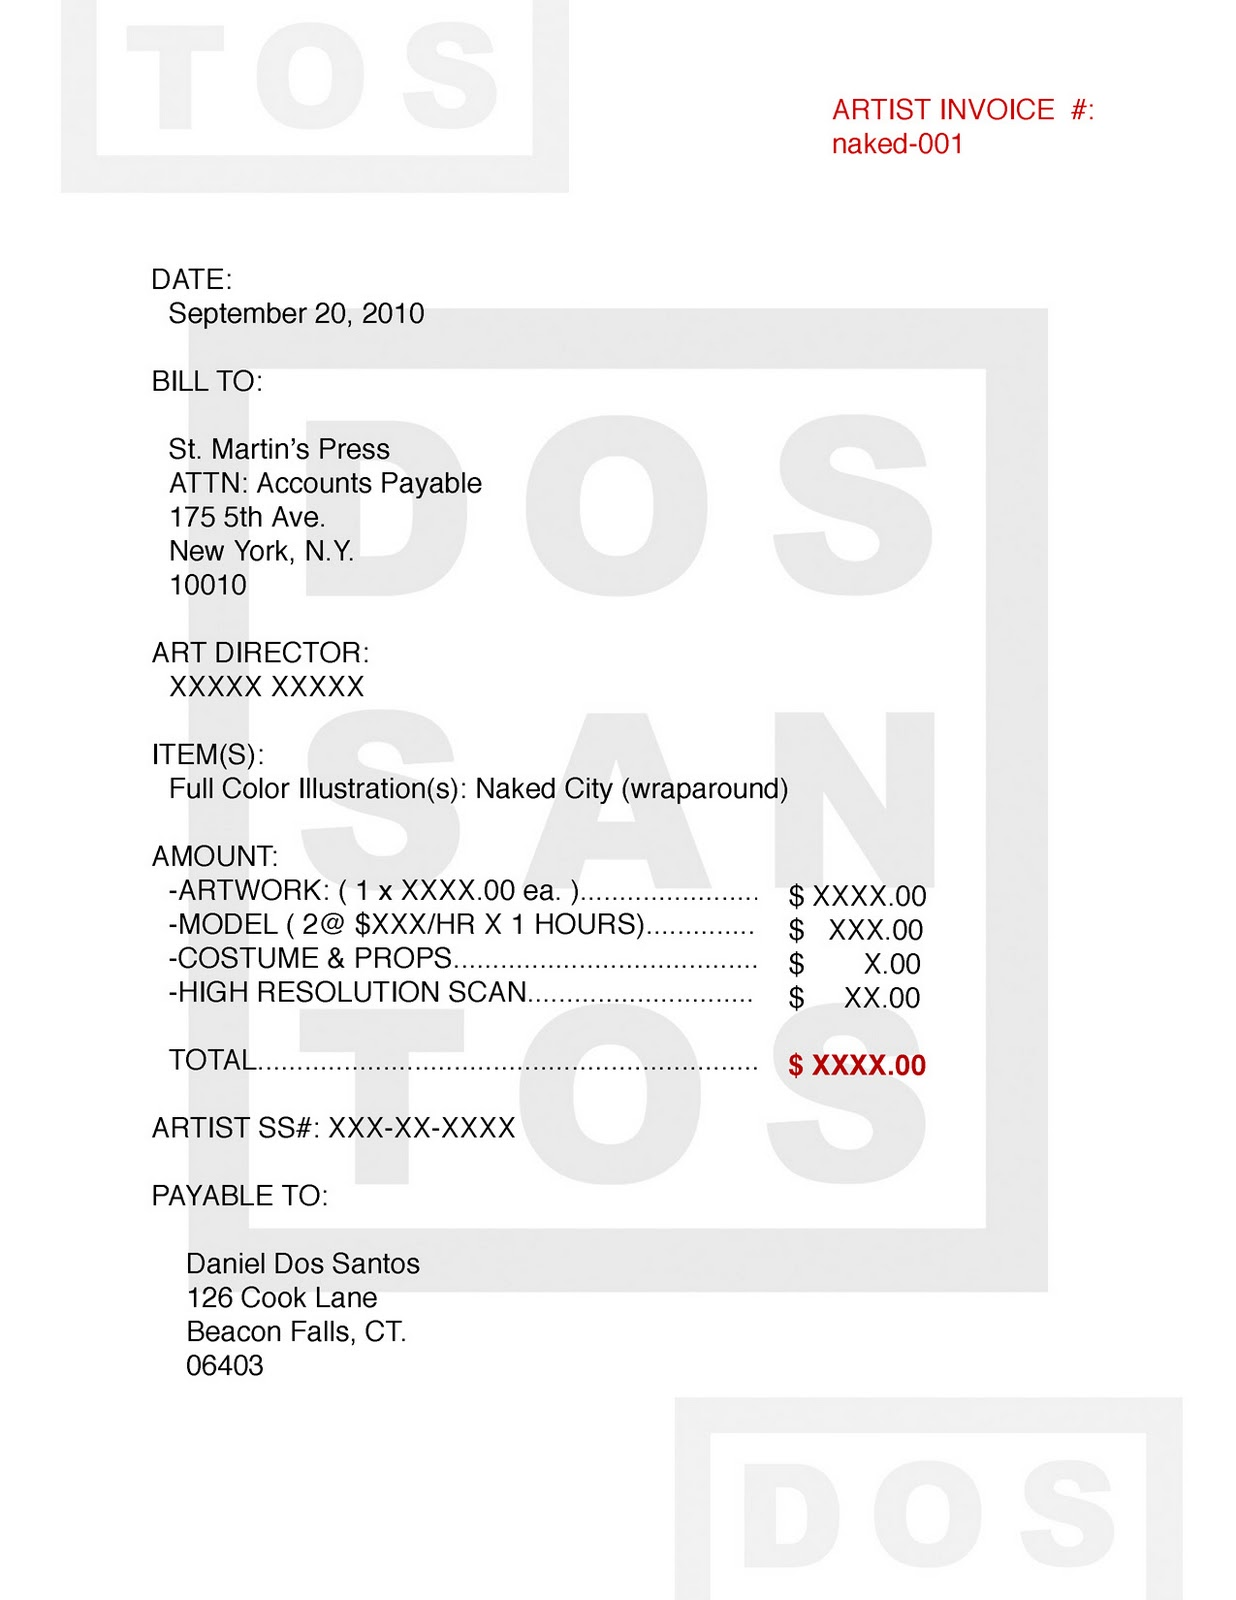 Centralasianshepherdus  Scenic Muddy Colors Invoices With Fetching I Believe That This Format Contains All The Pertinent Information That A Good Invoice Should Have And Can Serve As A Decent Template For Your Own With Cool Shipping Invoice Definition Also Rental Invoice Template In Addition Msrp Invoice Price Difference And True Car Invoice Price As Well As What Is An Invoice Price On A New Car Additionally Free Invoice Template For Mac From Muddycolorsblogspotcom With Centralasianshepherdus  Fetching Muddy Colors Invoices With Cool I Believe That This Format Contains All The Pertinent Information That A Good Invoice Should Have And Can Serve As A Decent Template For Your Own And Scenic Shipping Invoice Definition Also Rental Invoice Template In Addition Msrp Invoice Price Difference From Muddycolorsblogspotcom